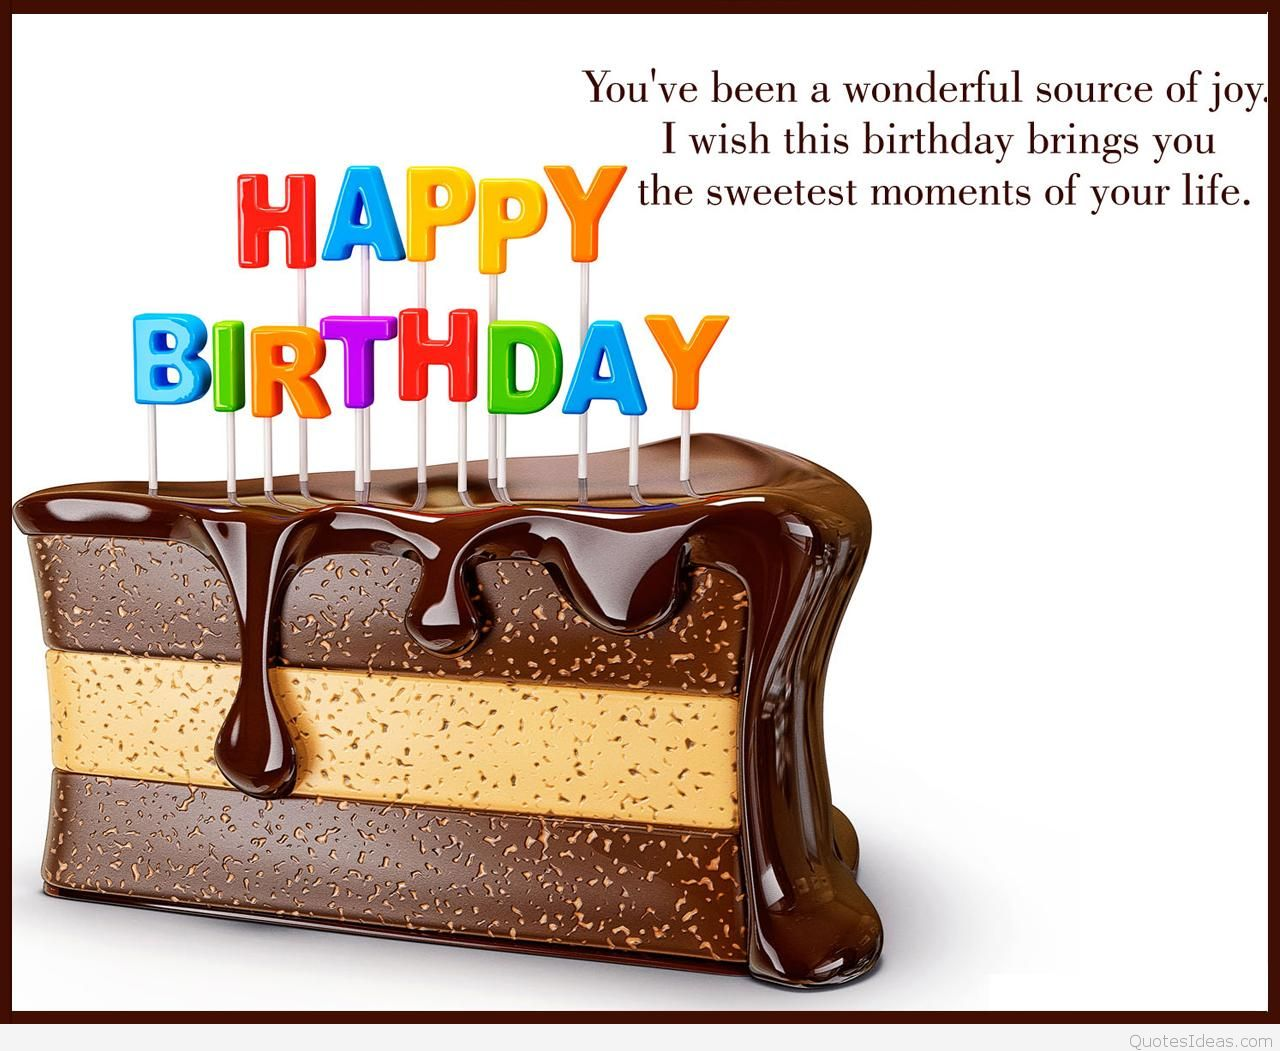 free happy birthday picture messages ; happy-birthday-quotes-with-cake-hd-wallpapers-free-1080p